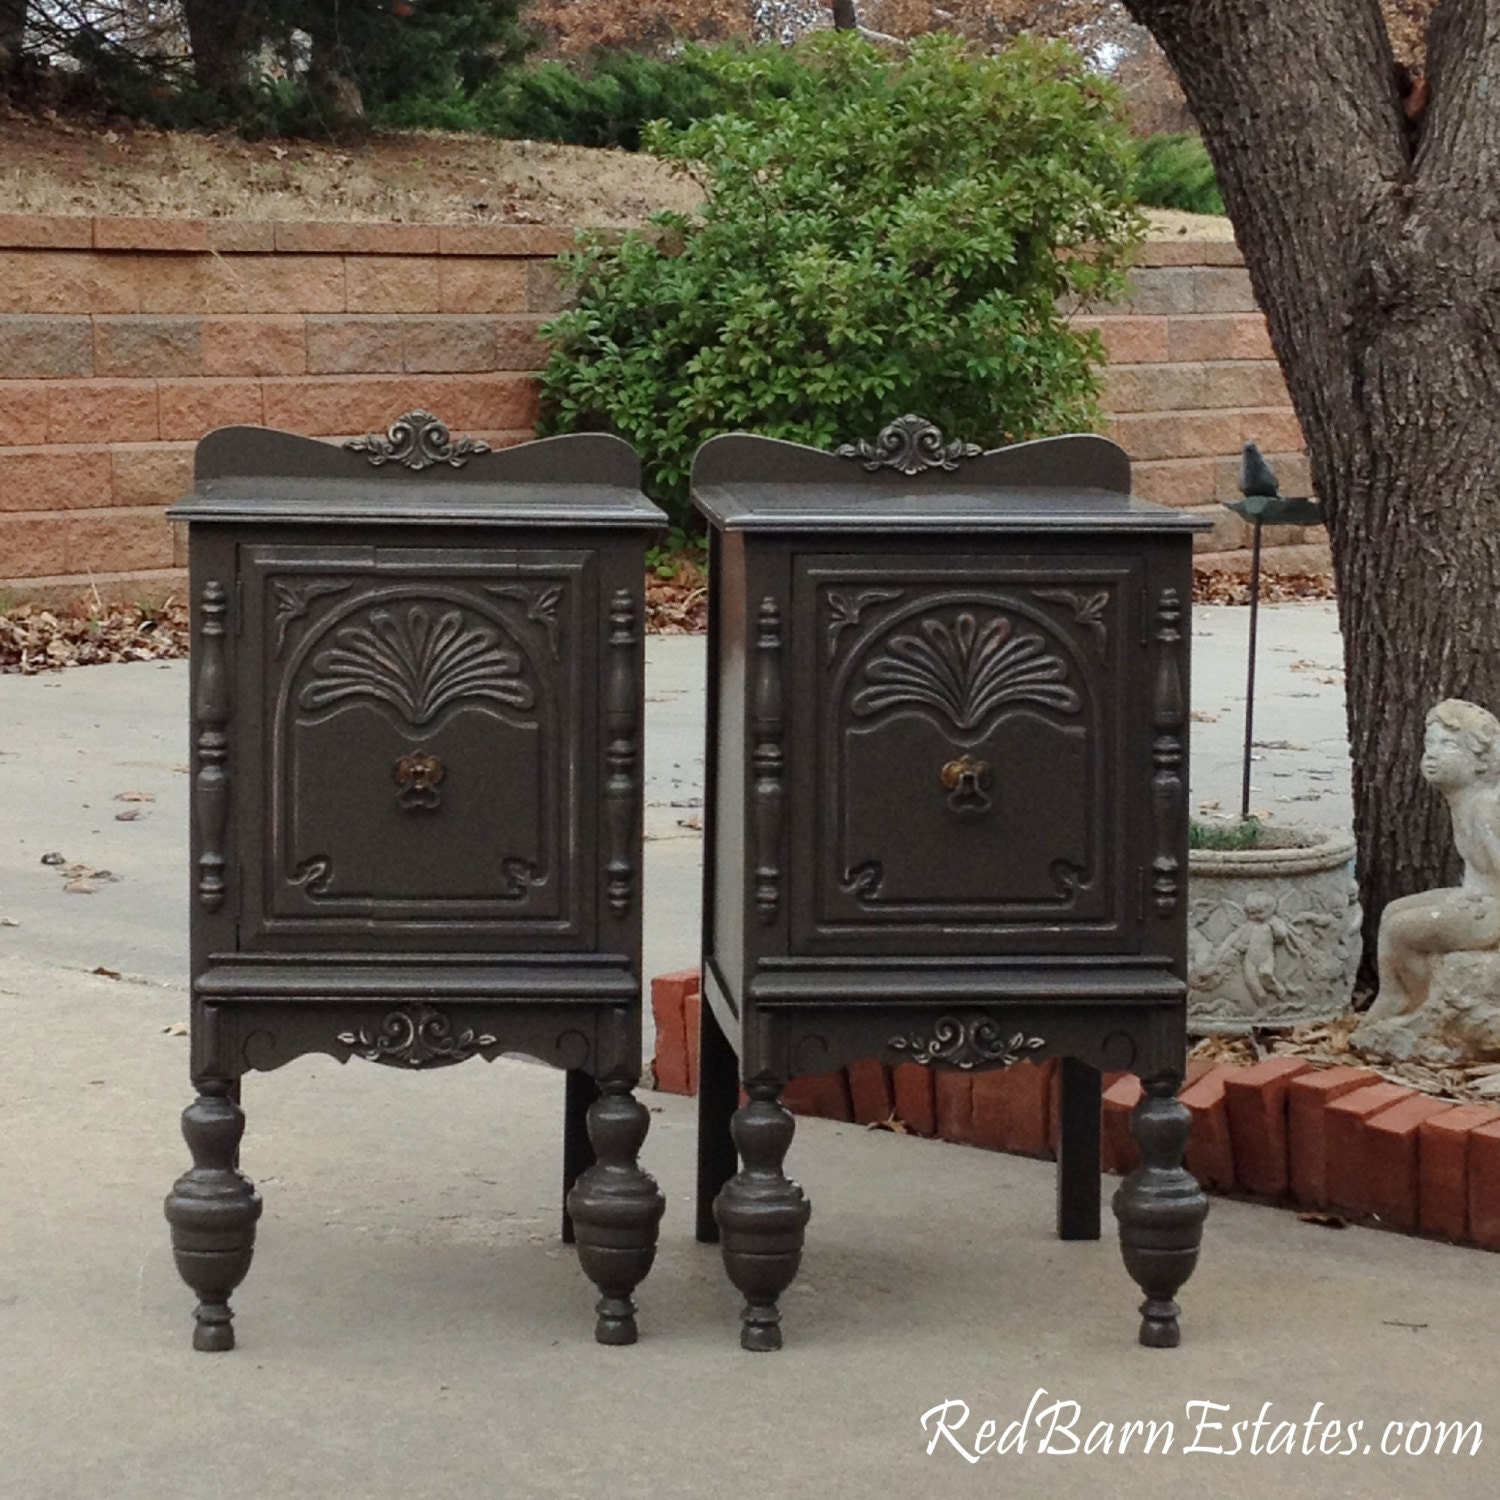 Antique Night Stands Painted Antique Nightstands You Order We Find Restore Adorn